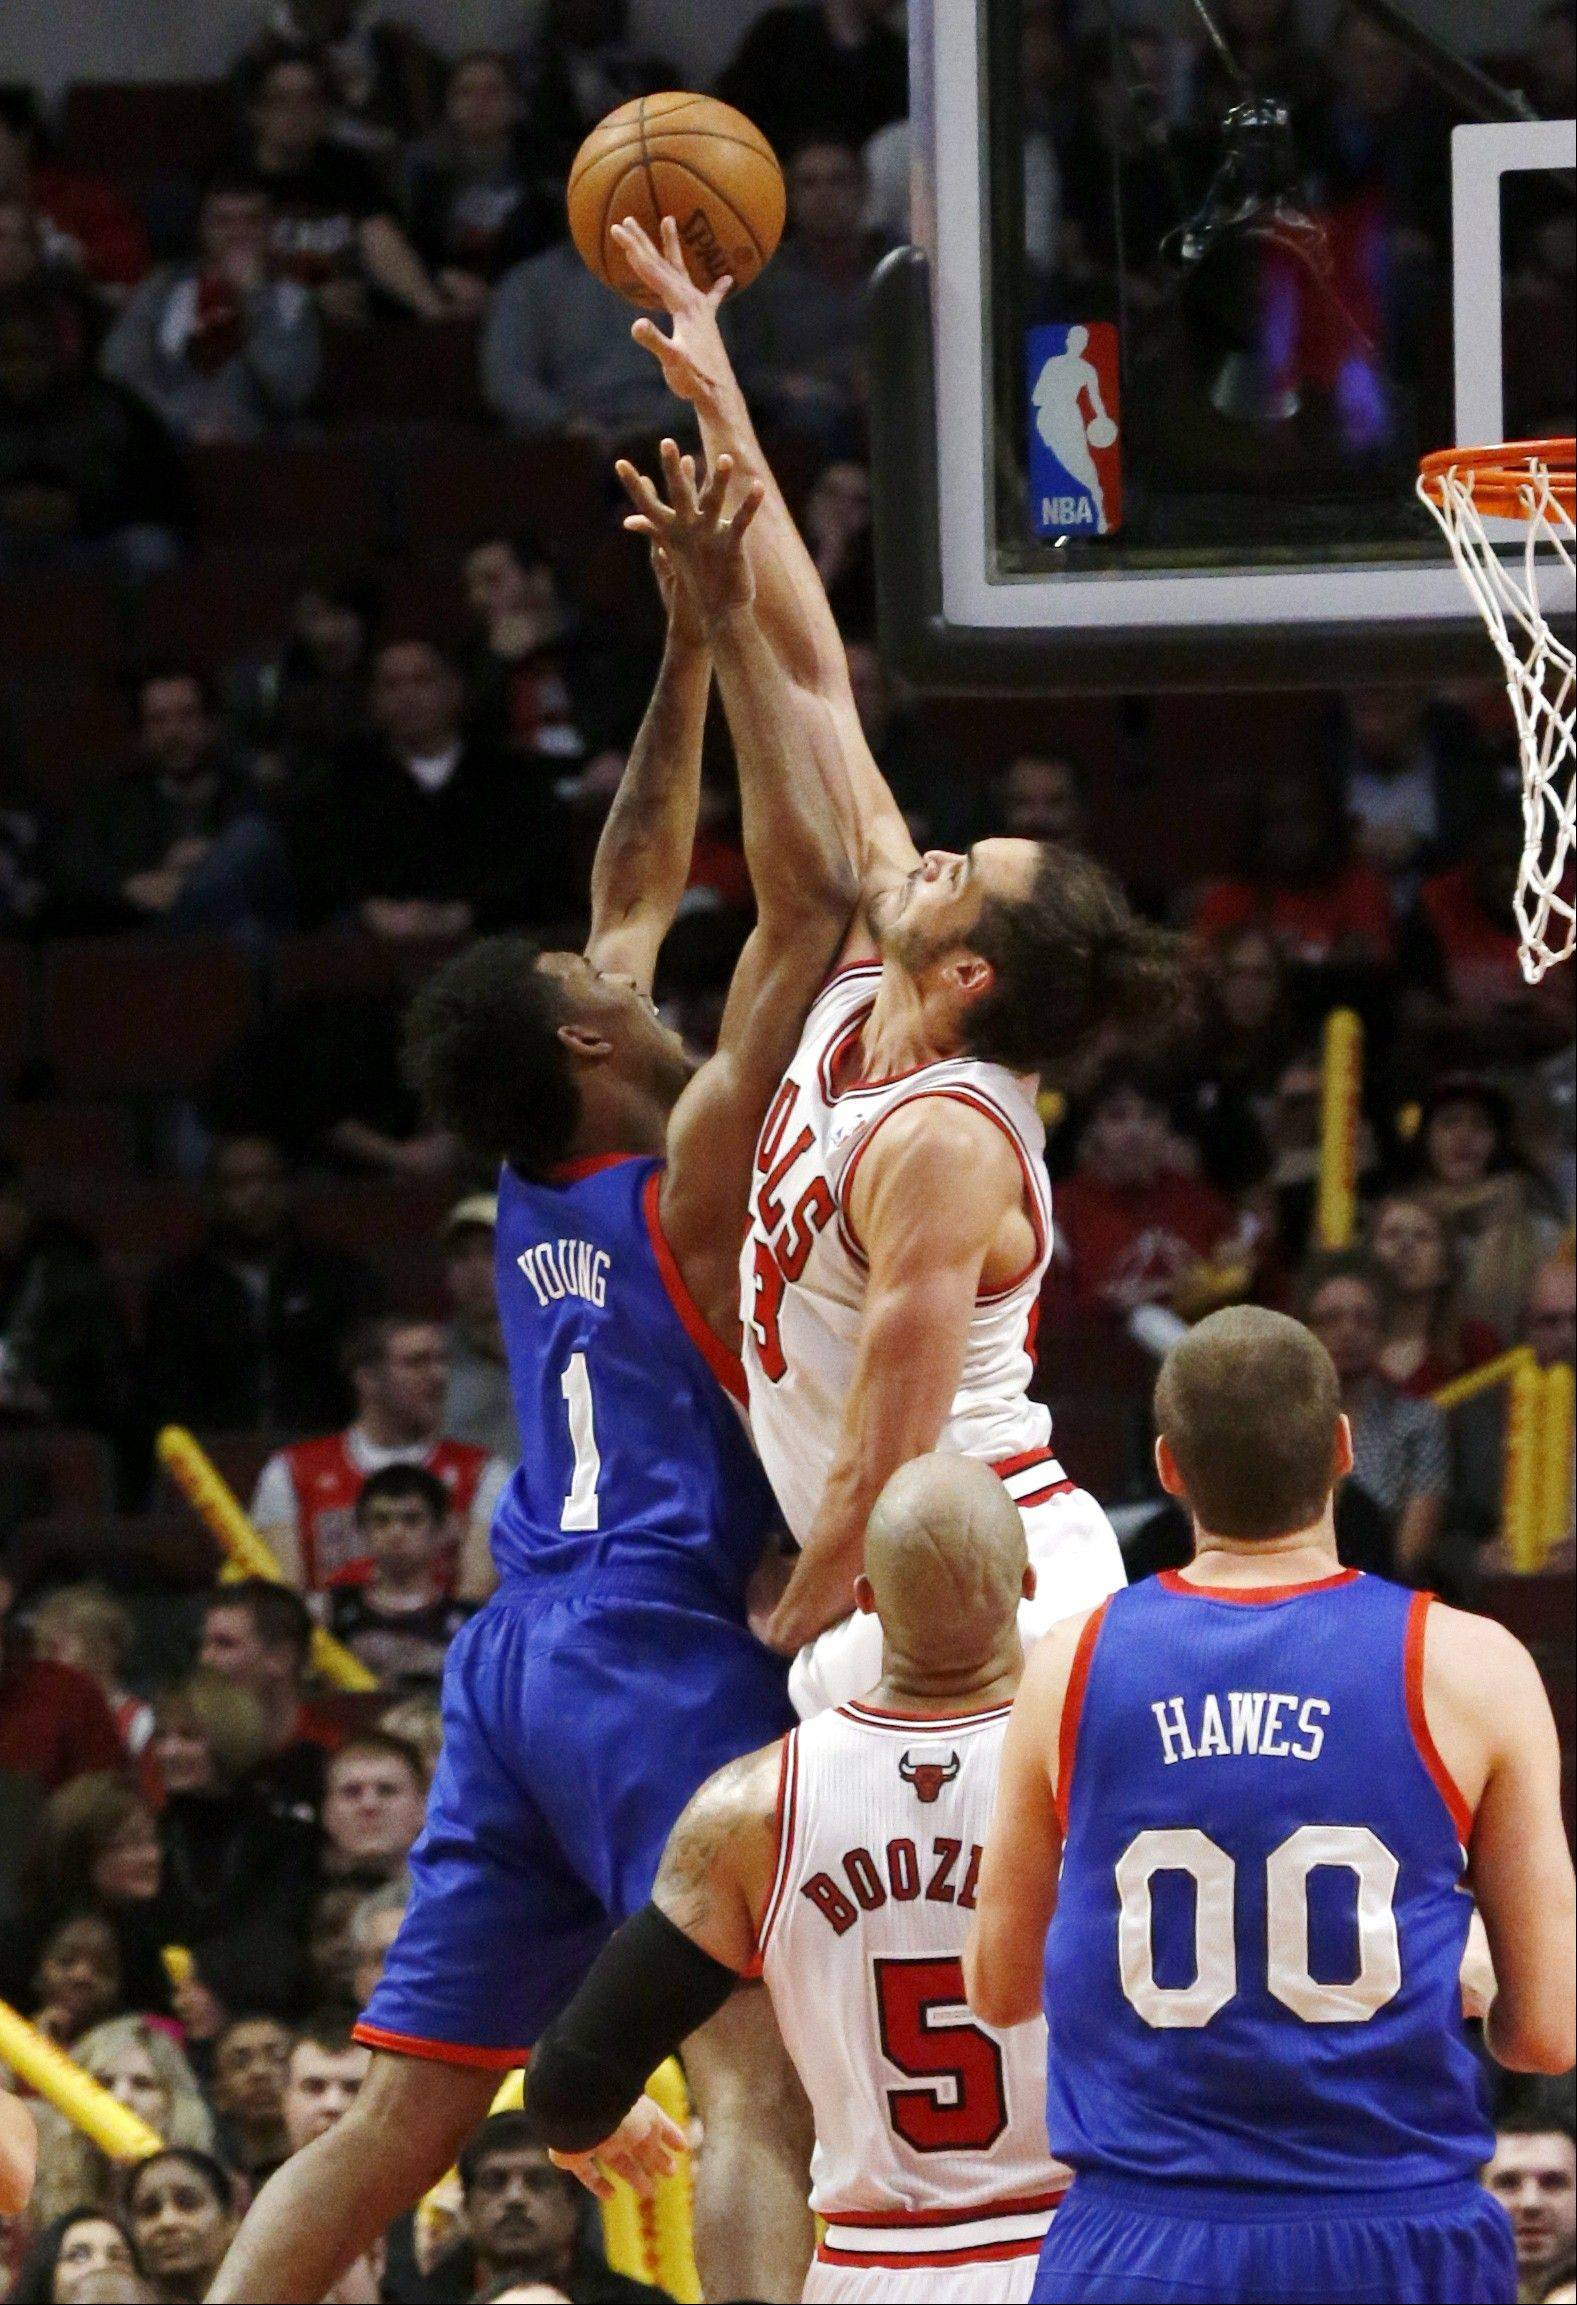 Bulls center Joakim Noah blocks the shot of Philadelphia 76ers guard Nick Young (1) as Spencer Hawes (00) and Bulls' Carlos Boozer (5) watch during the second half of Thursday night's game. Noah recorded a triple double of 23 points, 21 rebounds and 11 blocked shots as the Bulls won 93-82.